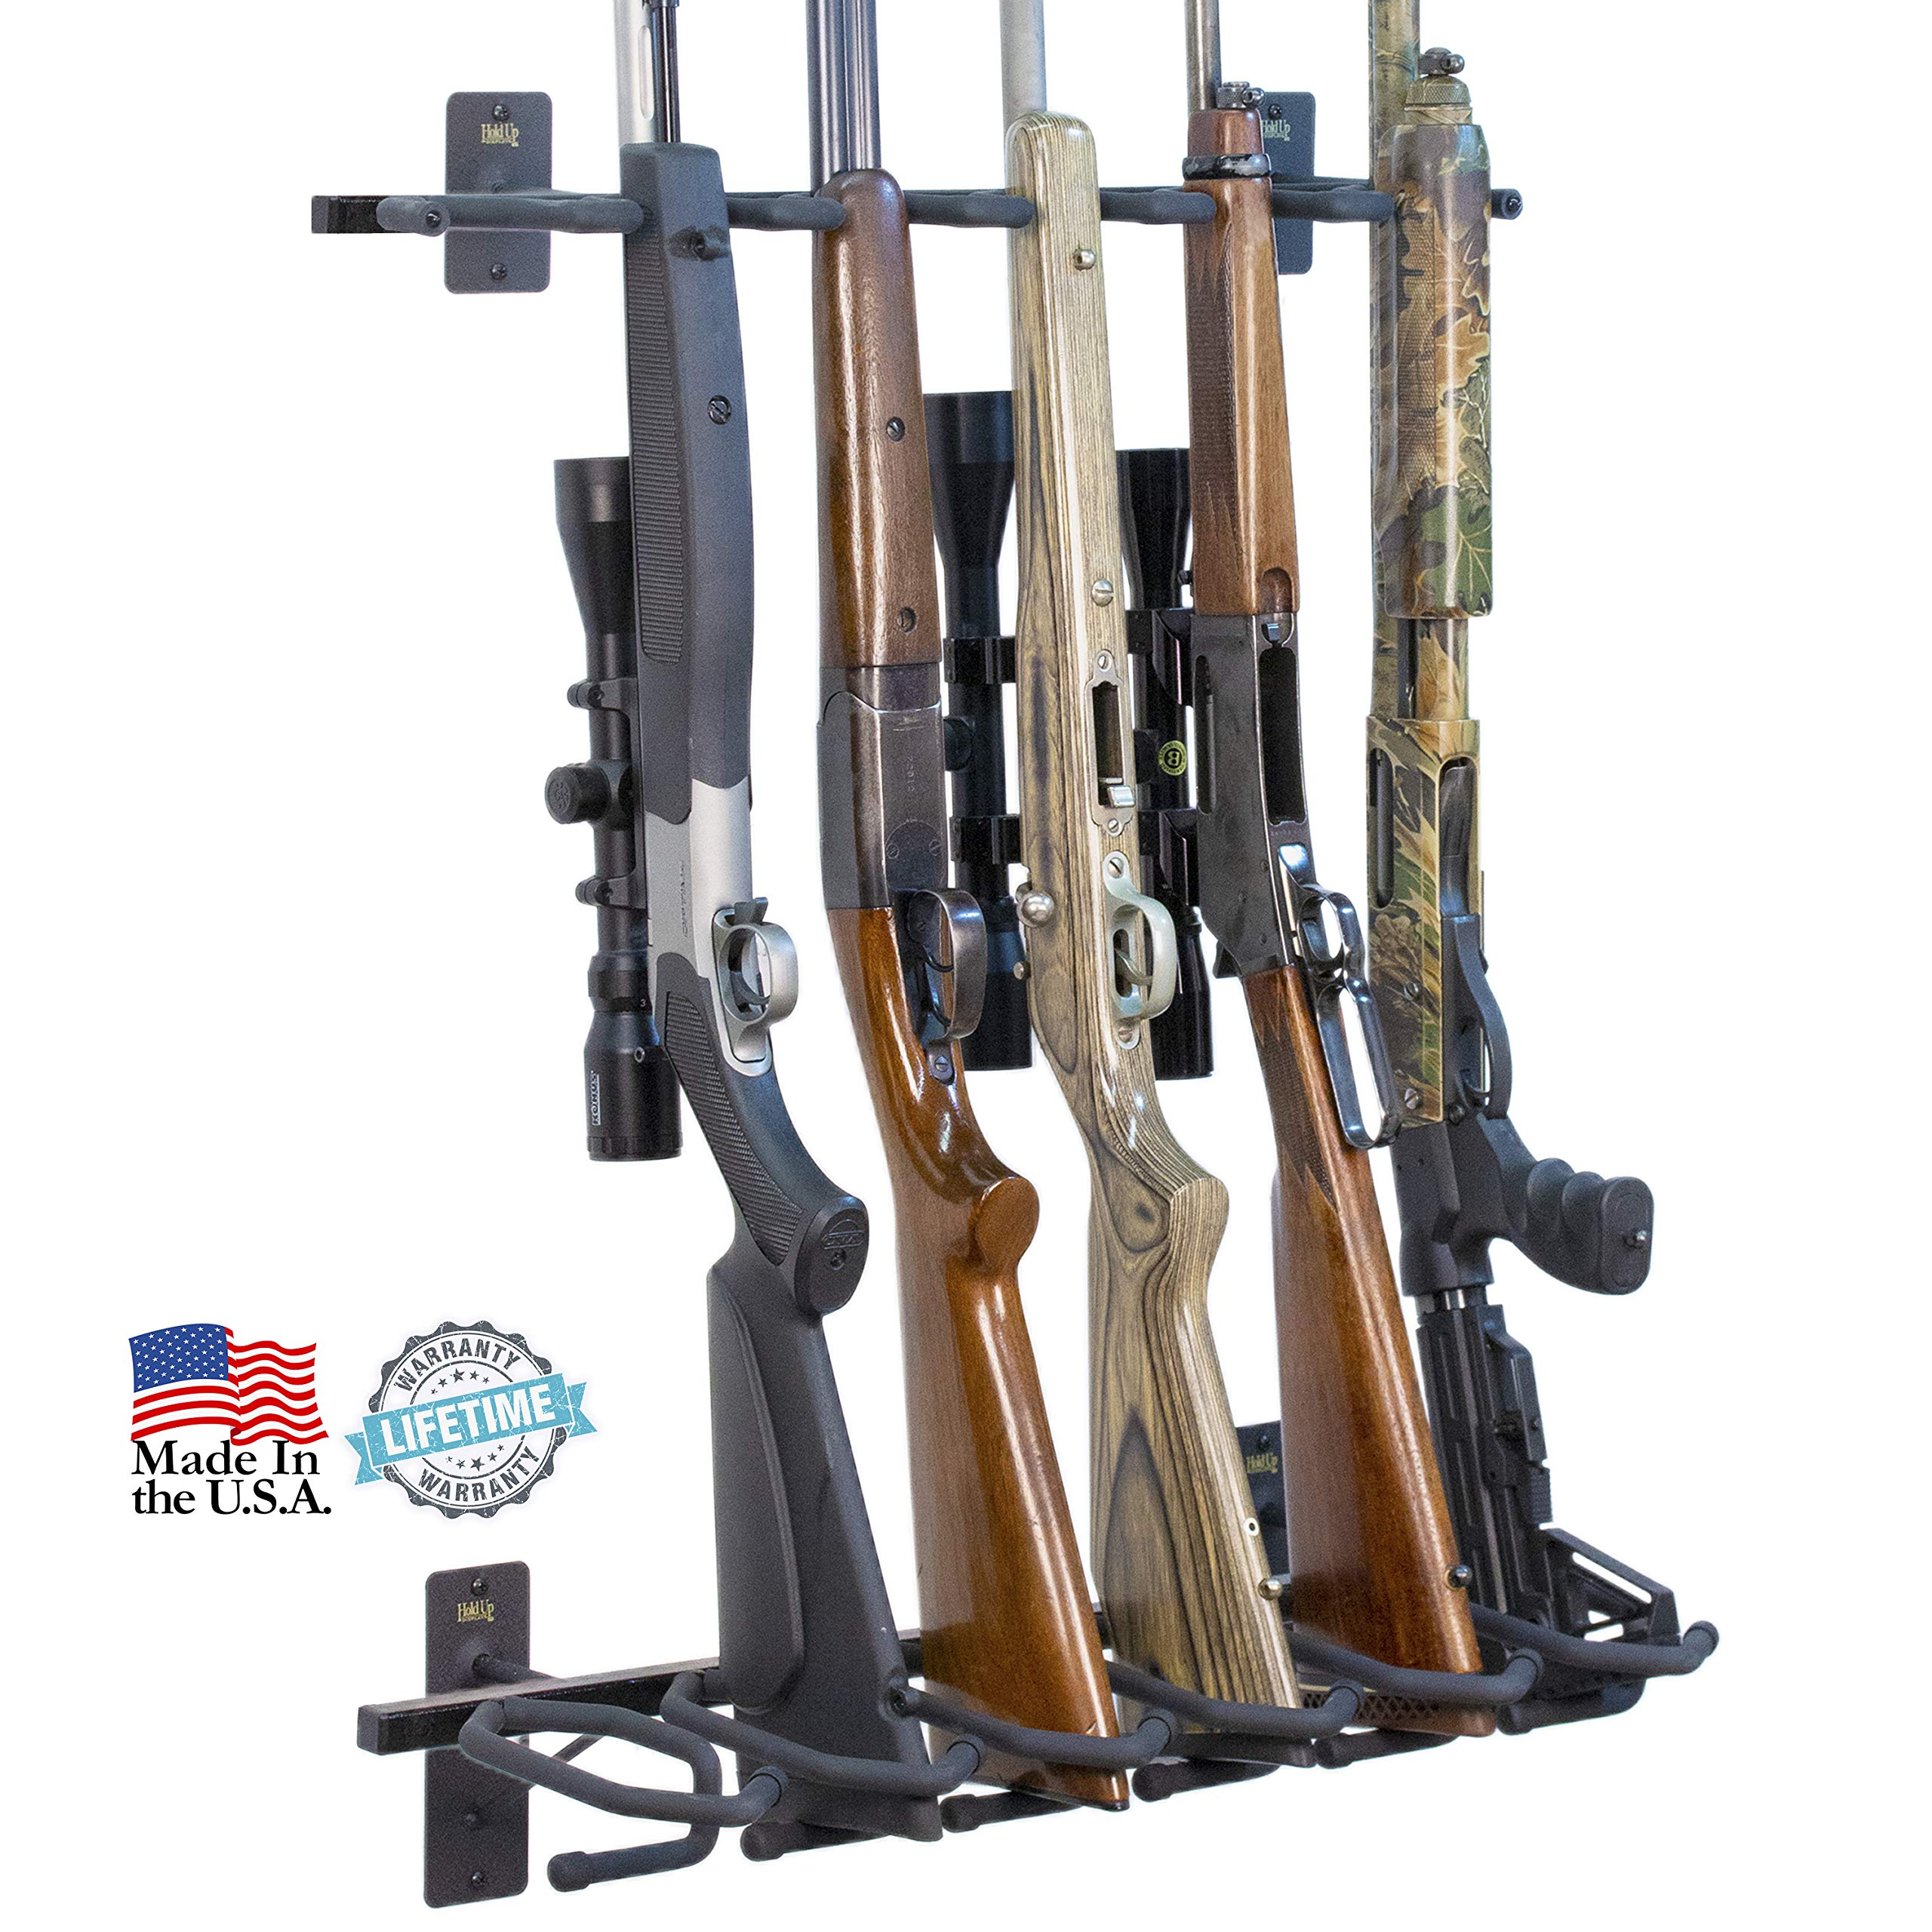 Hold Up Displays - Gun Rack and Rifle Storage Holds 6 Winchester Remington Ruger Firearms and More - Heavy Duty Steel - Made in USA by Hold Up Displays